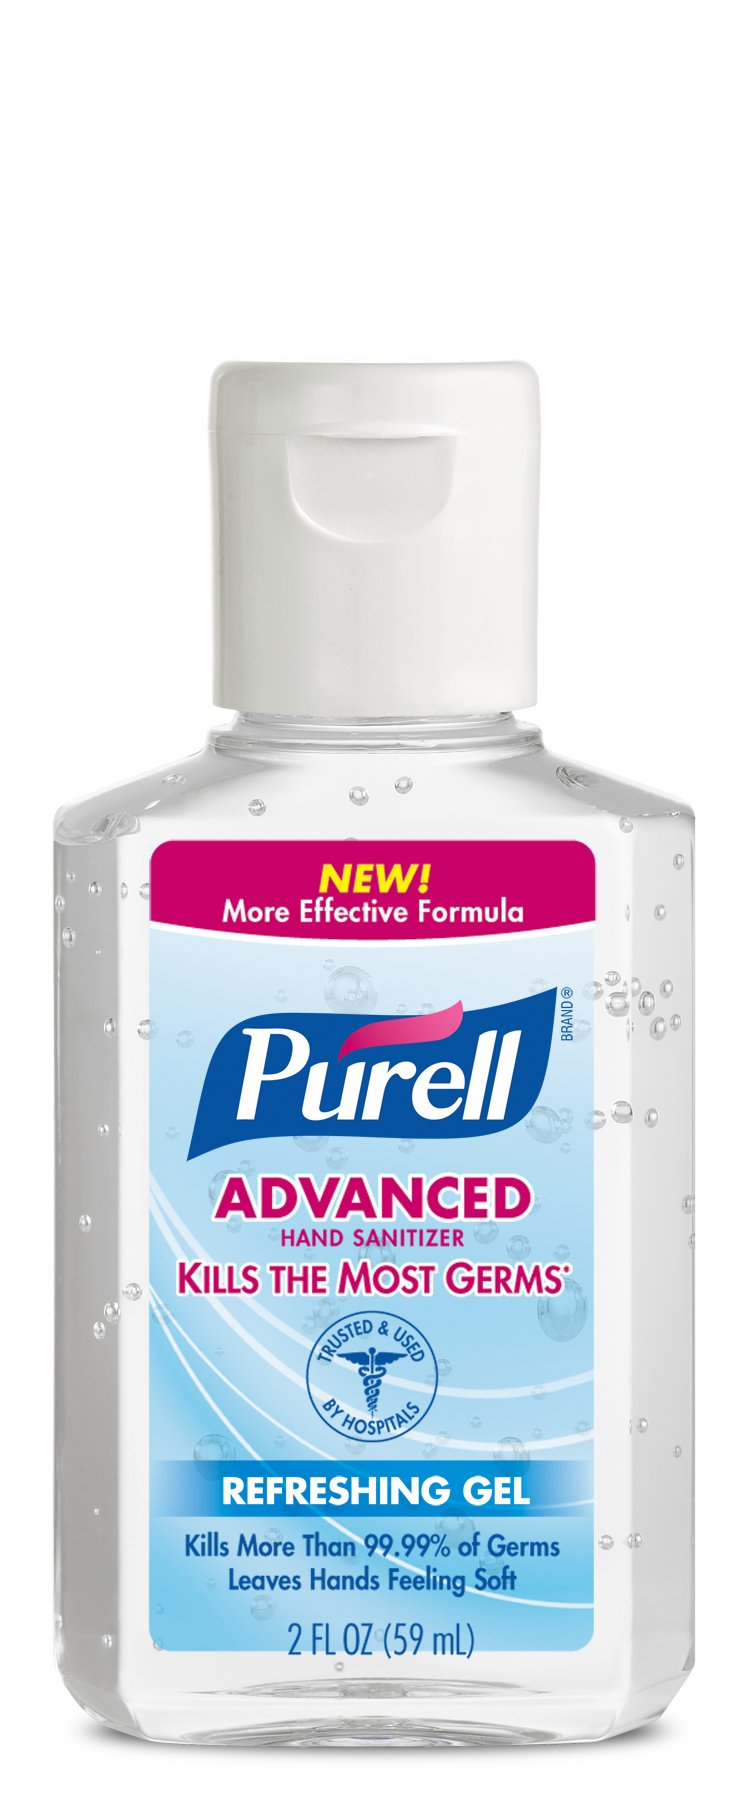 PURELL Advanced Hand Sanitizer, Refreshing Gel, 2 fl oz Portable, Travel sized Flip Cap Bottles (Pack of 24) - 9650-24-CMR by Purell